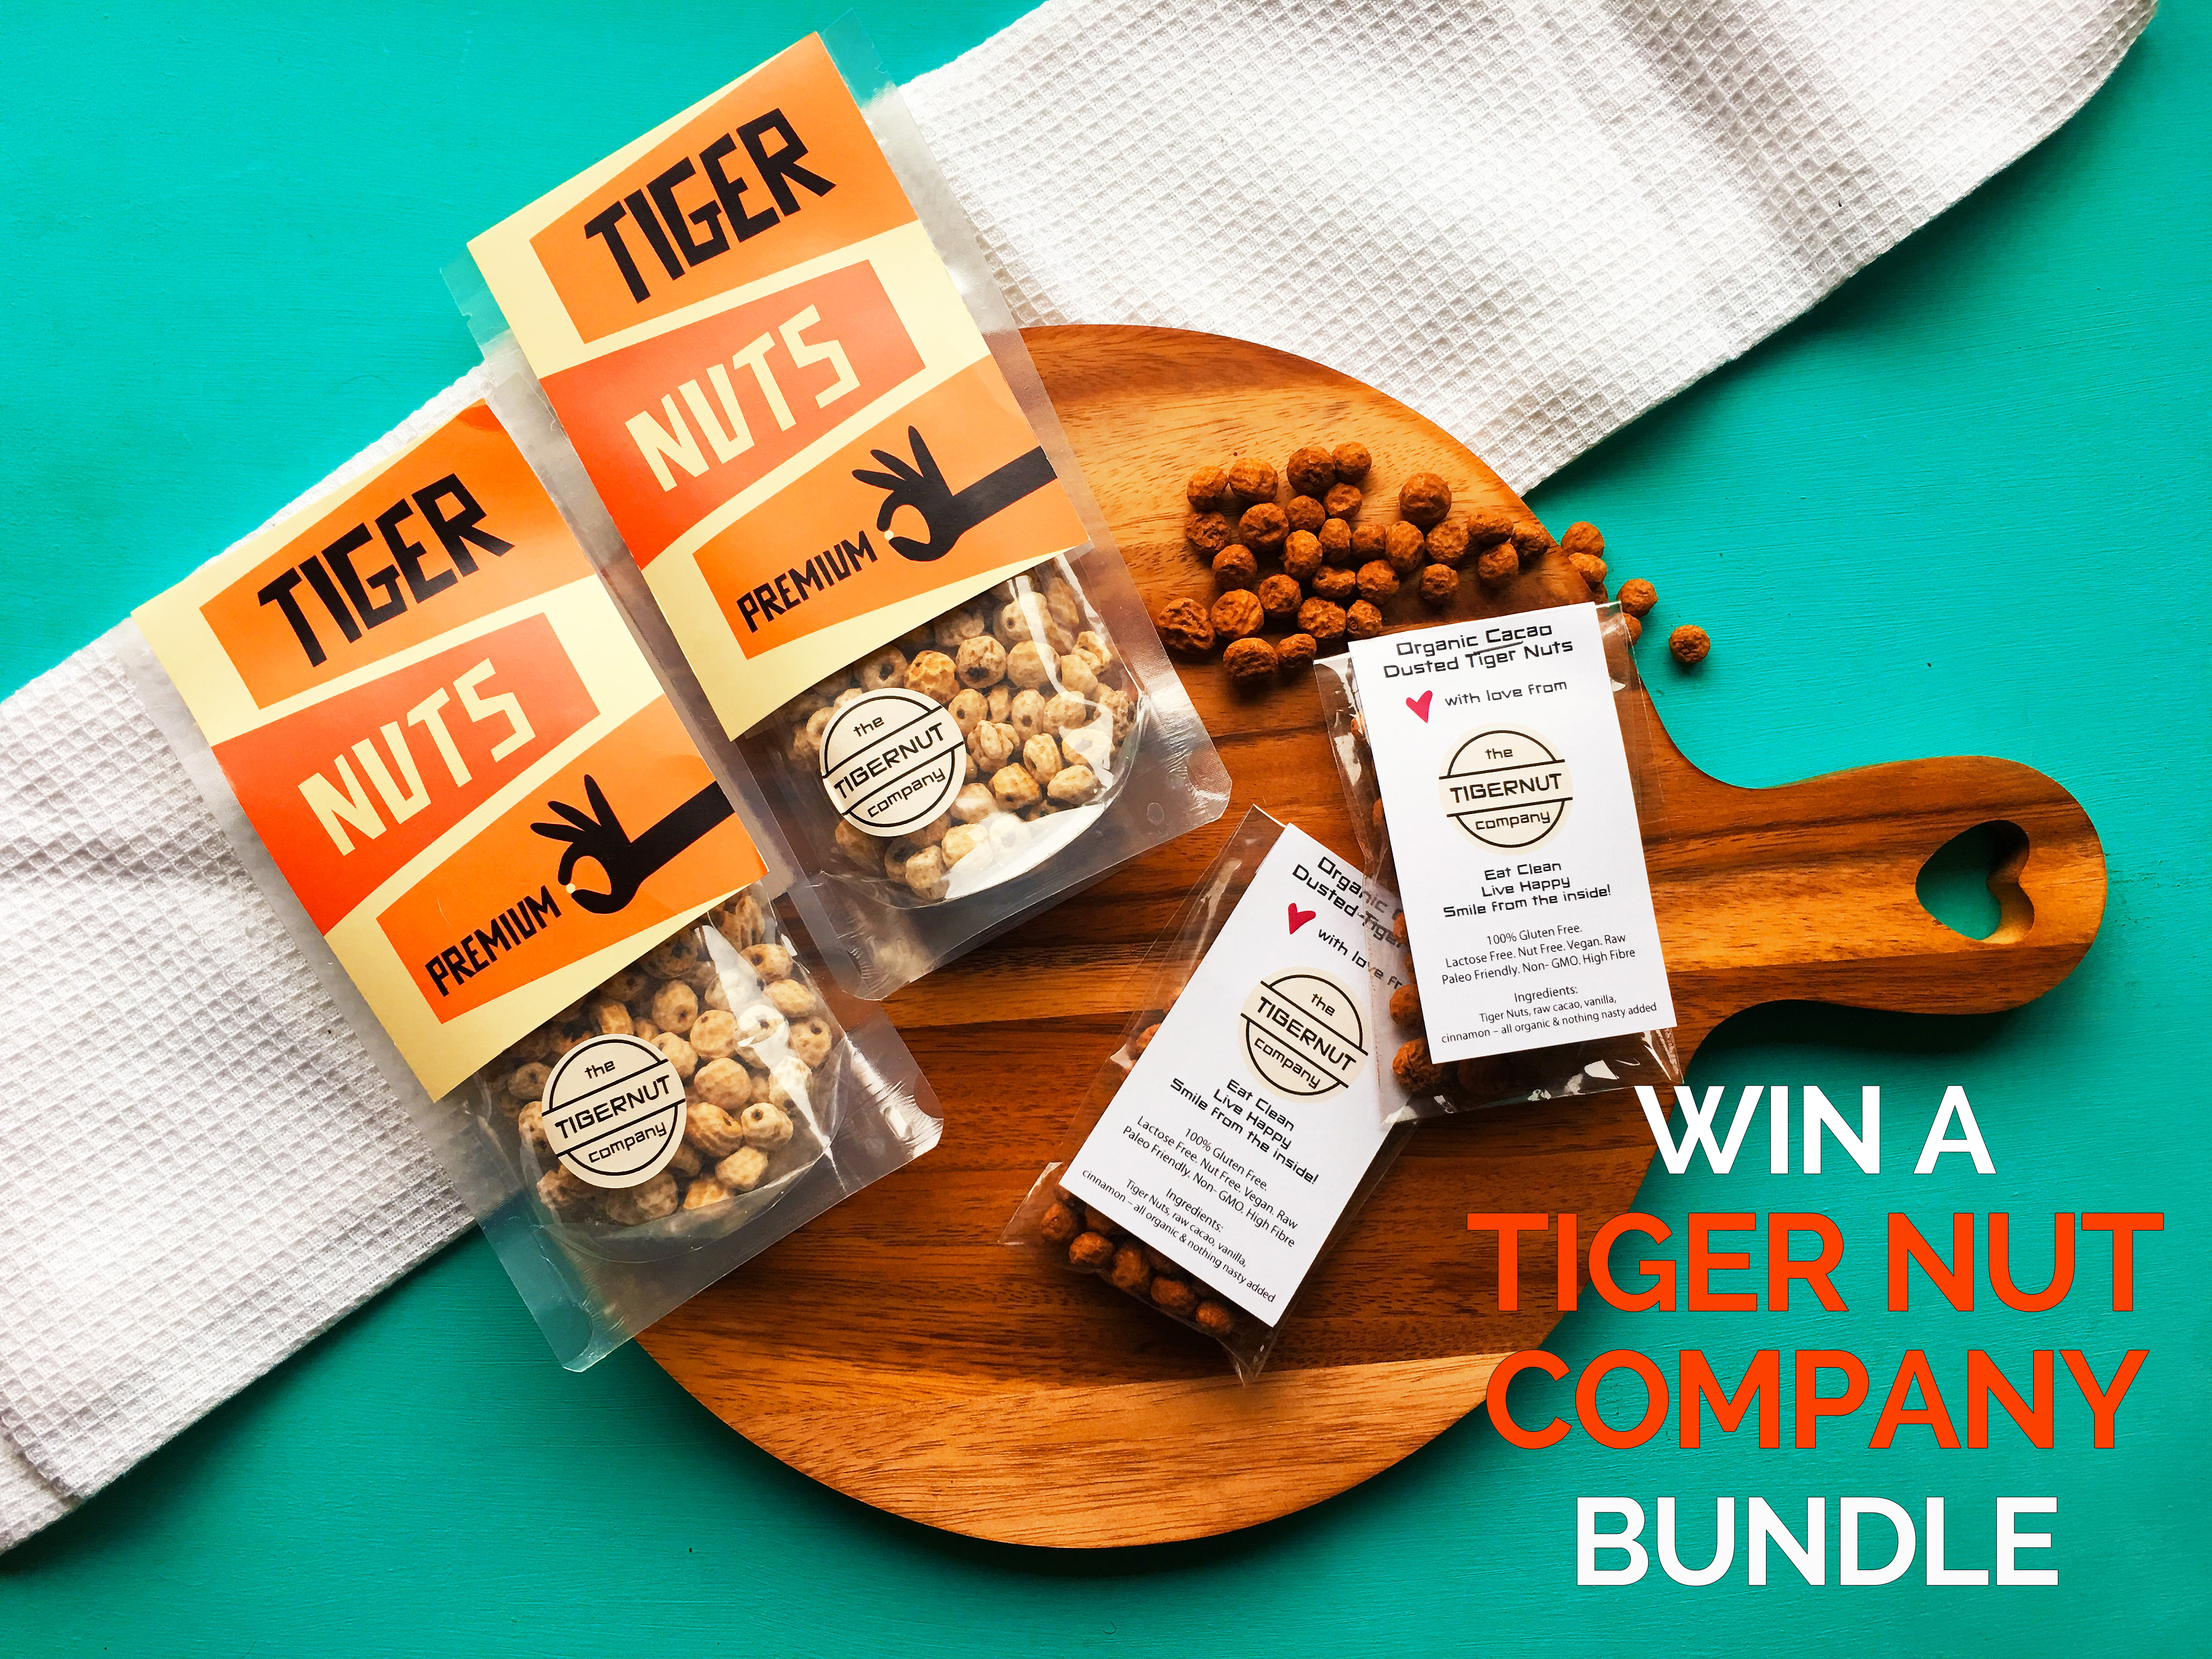 Tiger Nut Company Giveaway